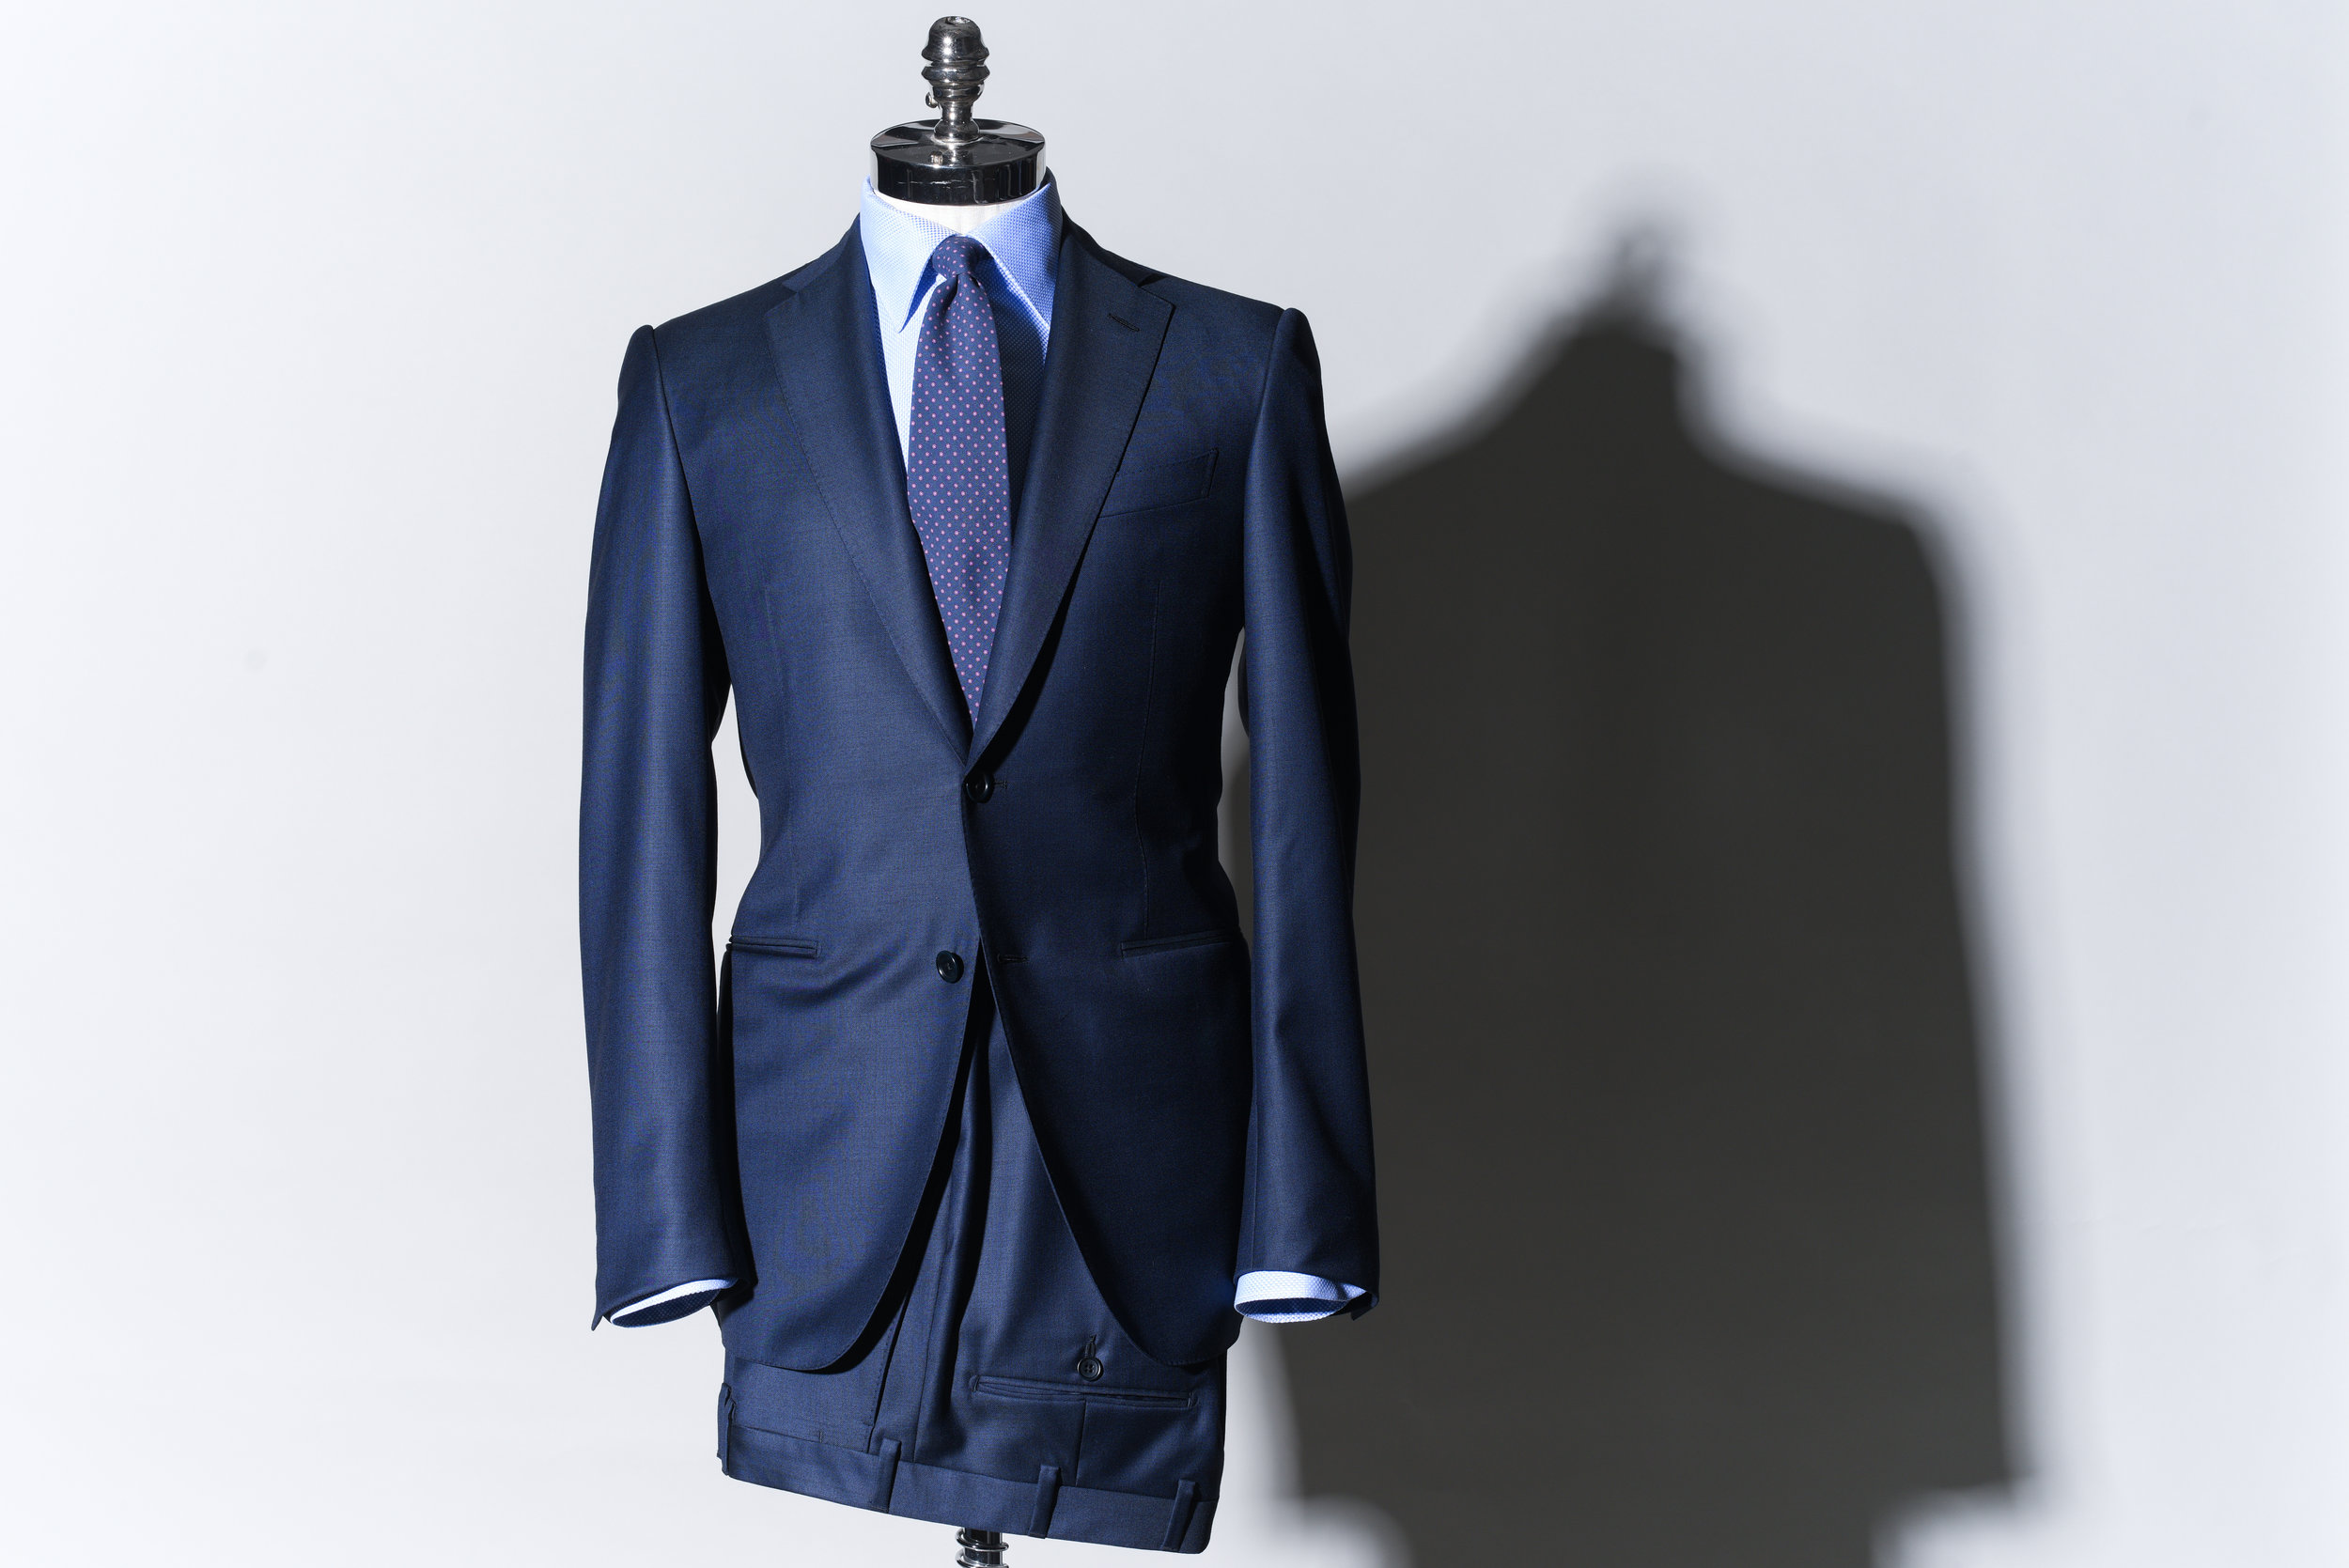 ICON  Suit (SOLD OUT)   9500 Sek   Full canvas, 100% wool, s130 from Vitale Barberis, Noch lapels, 2 jetted pockets, double vents.